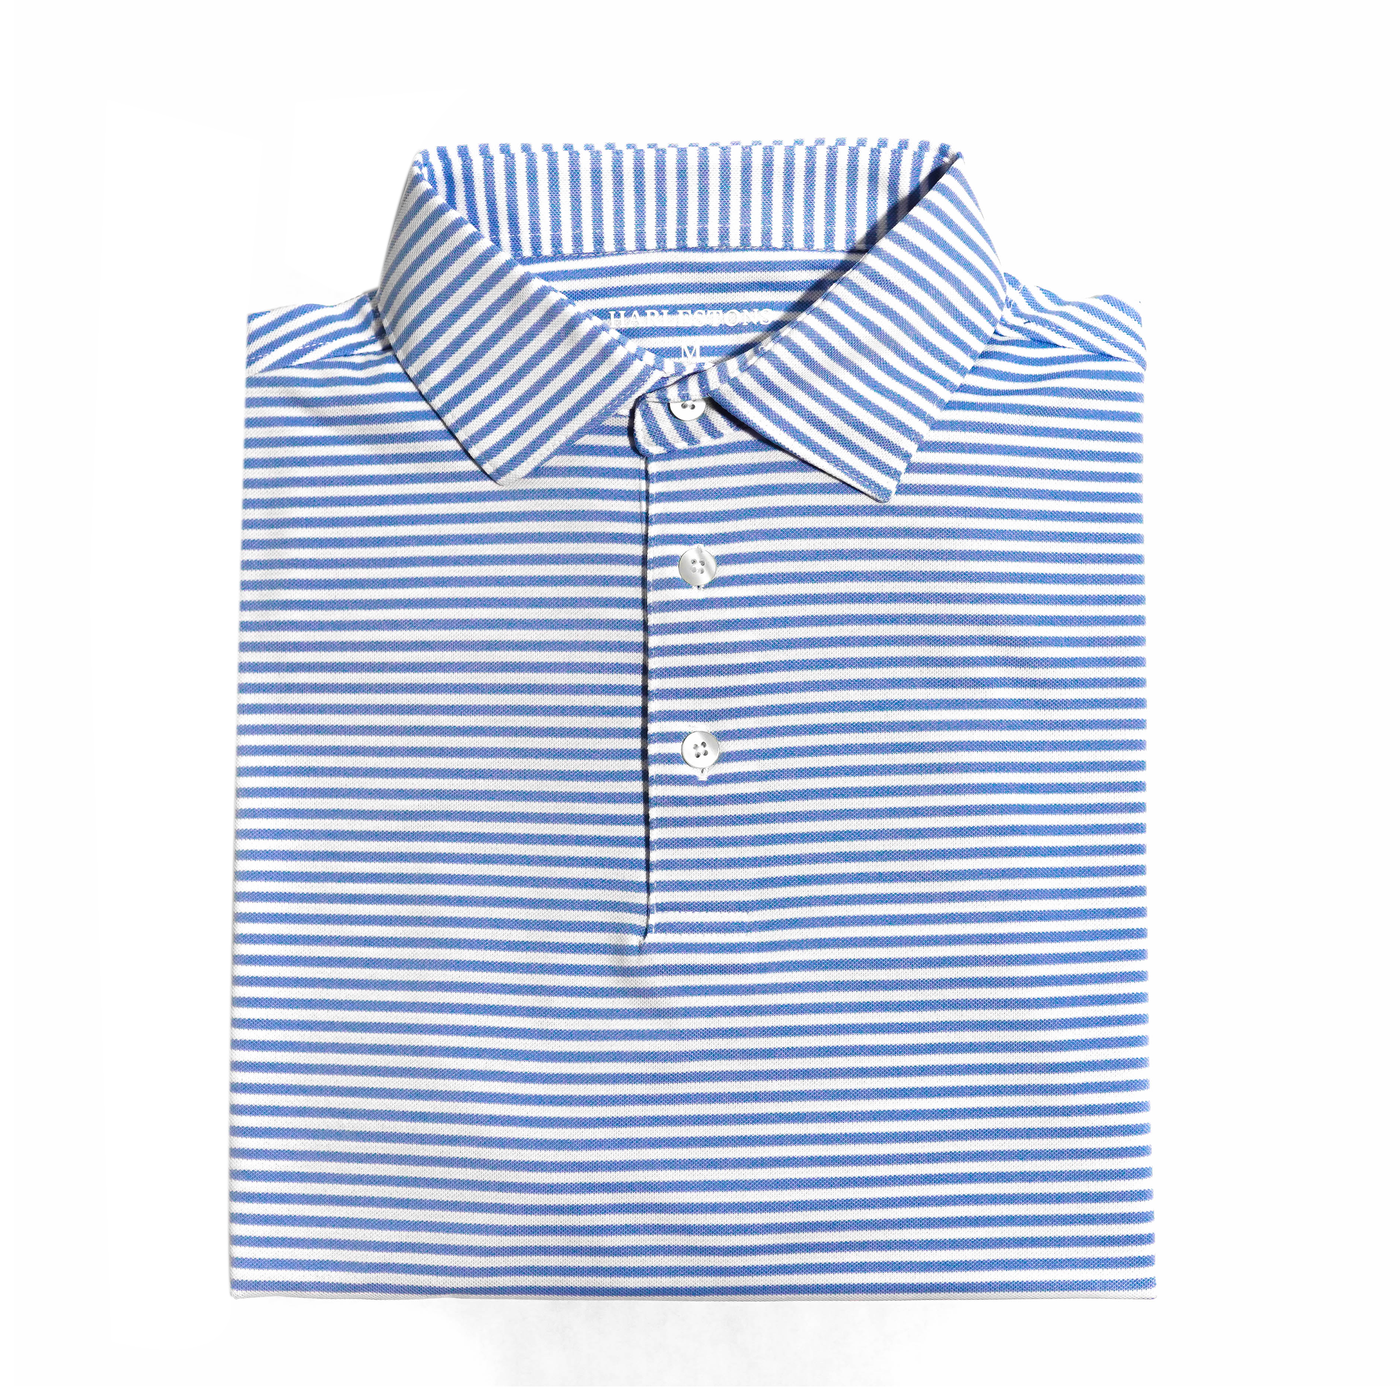 Harlestons Golf Shirt | Father's Day Gift Guide 2020 on Rhyme & Reason